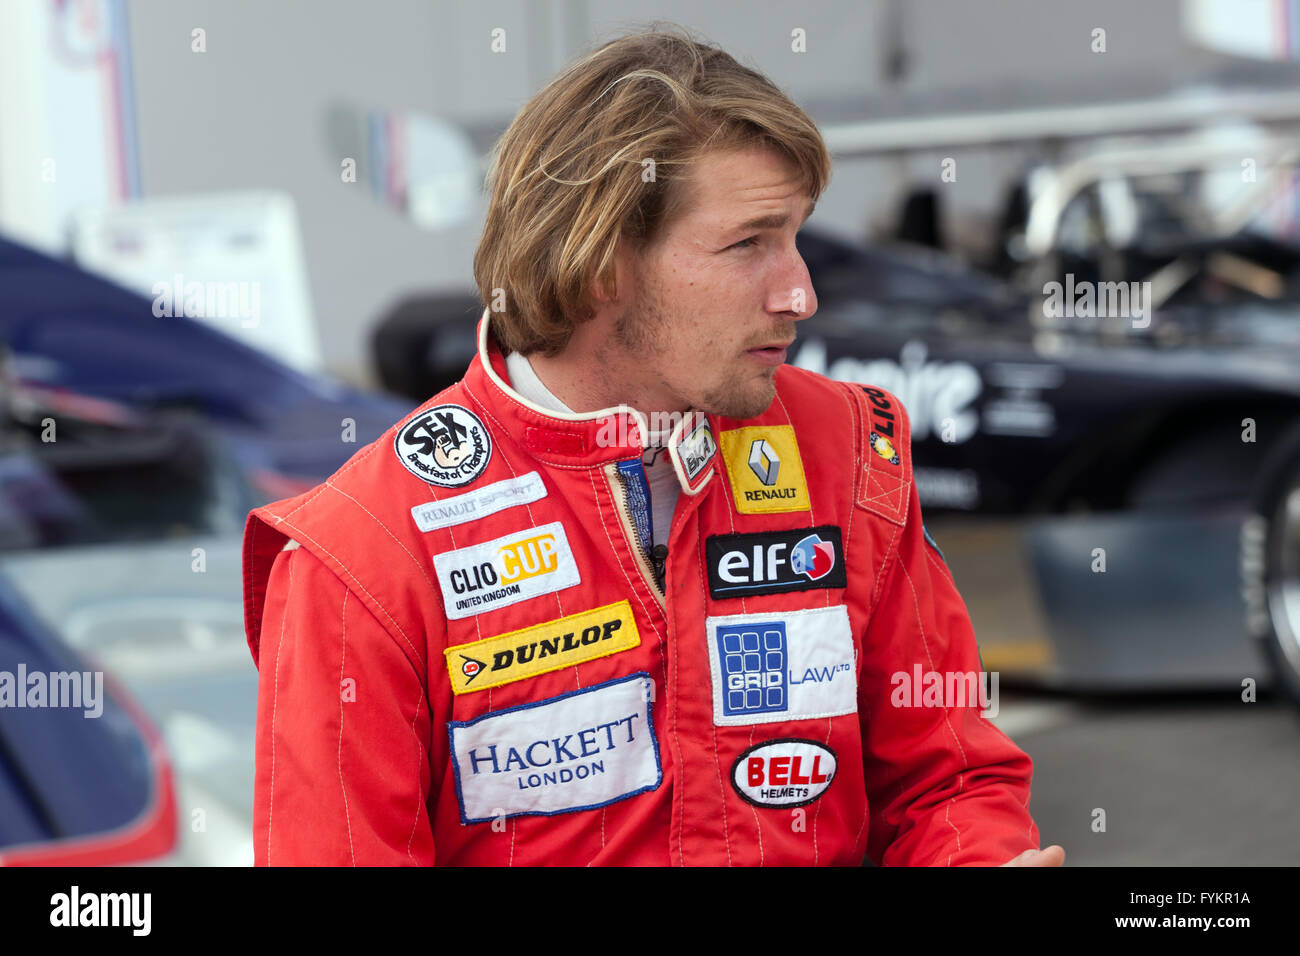 Freddie Hunt, son of James Hunt, was at the Silverstone ...